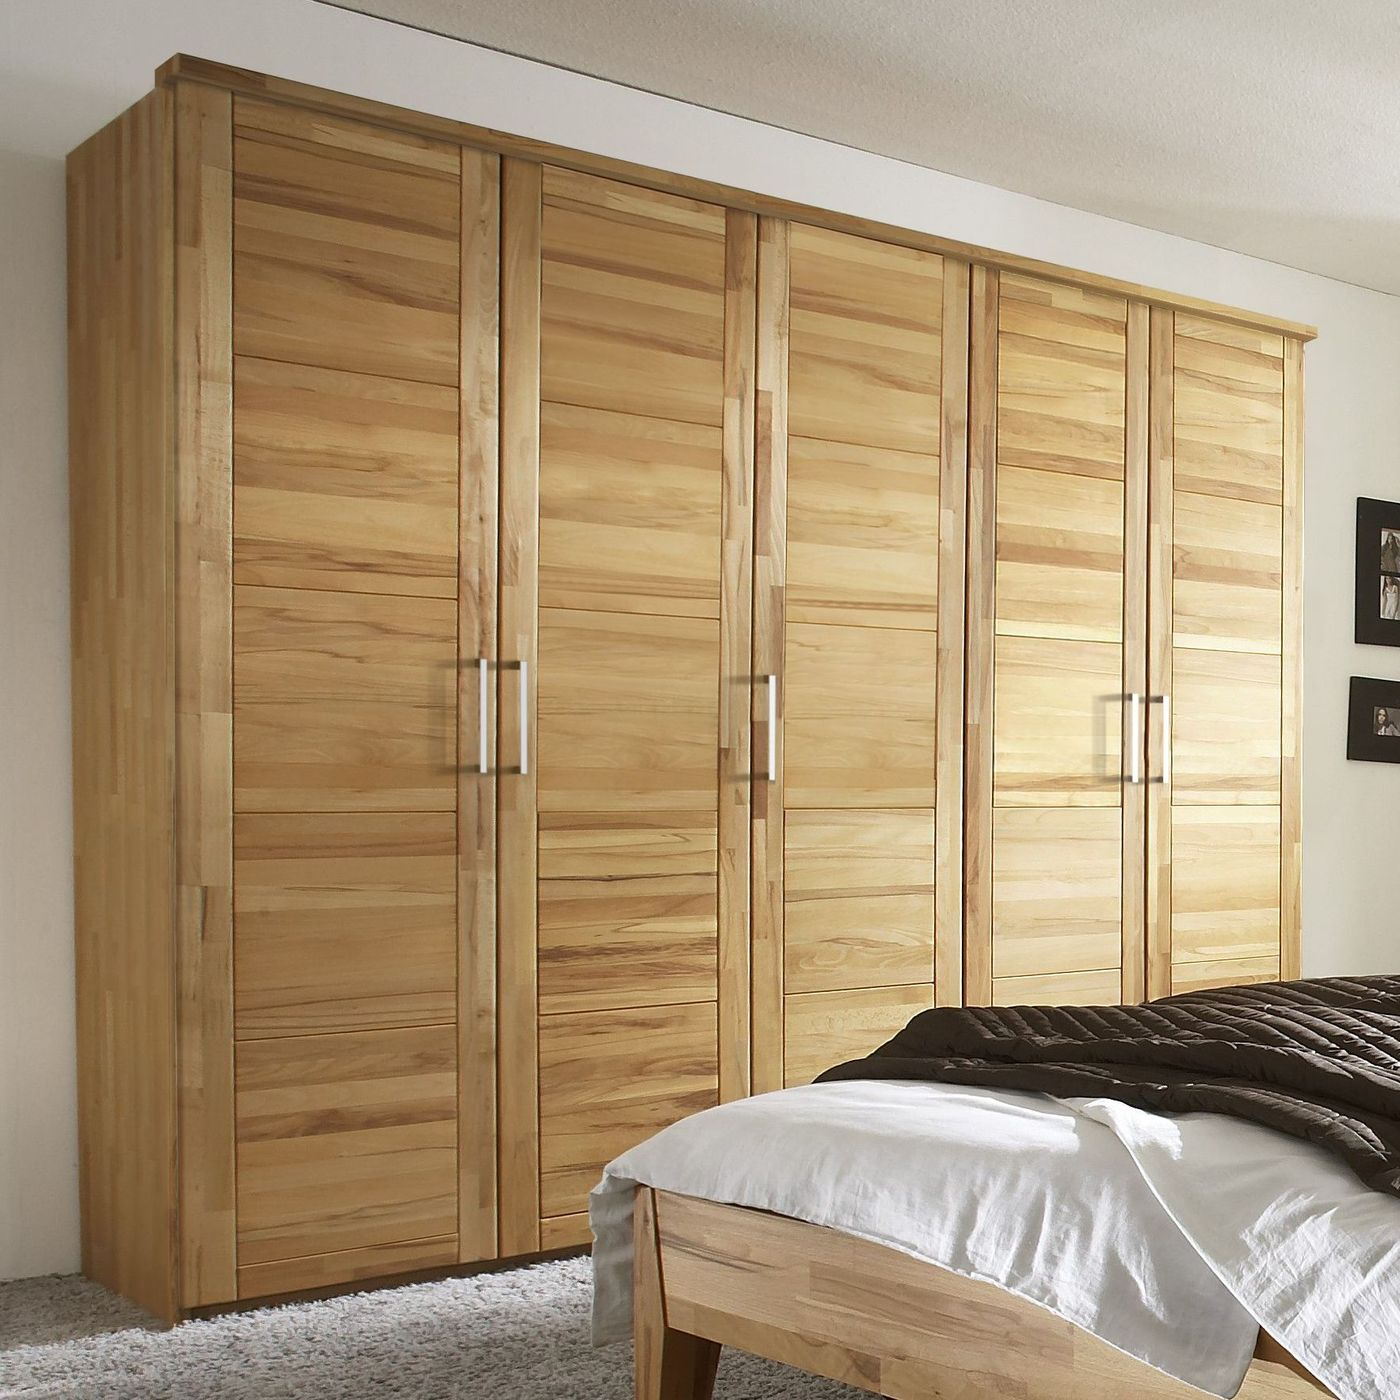 rustikaler dreht ren kleiderschrank aus buche kiran. Black Bedroom Furniture Sets. Home Design Ideas